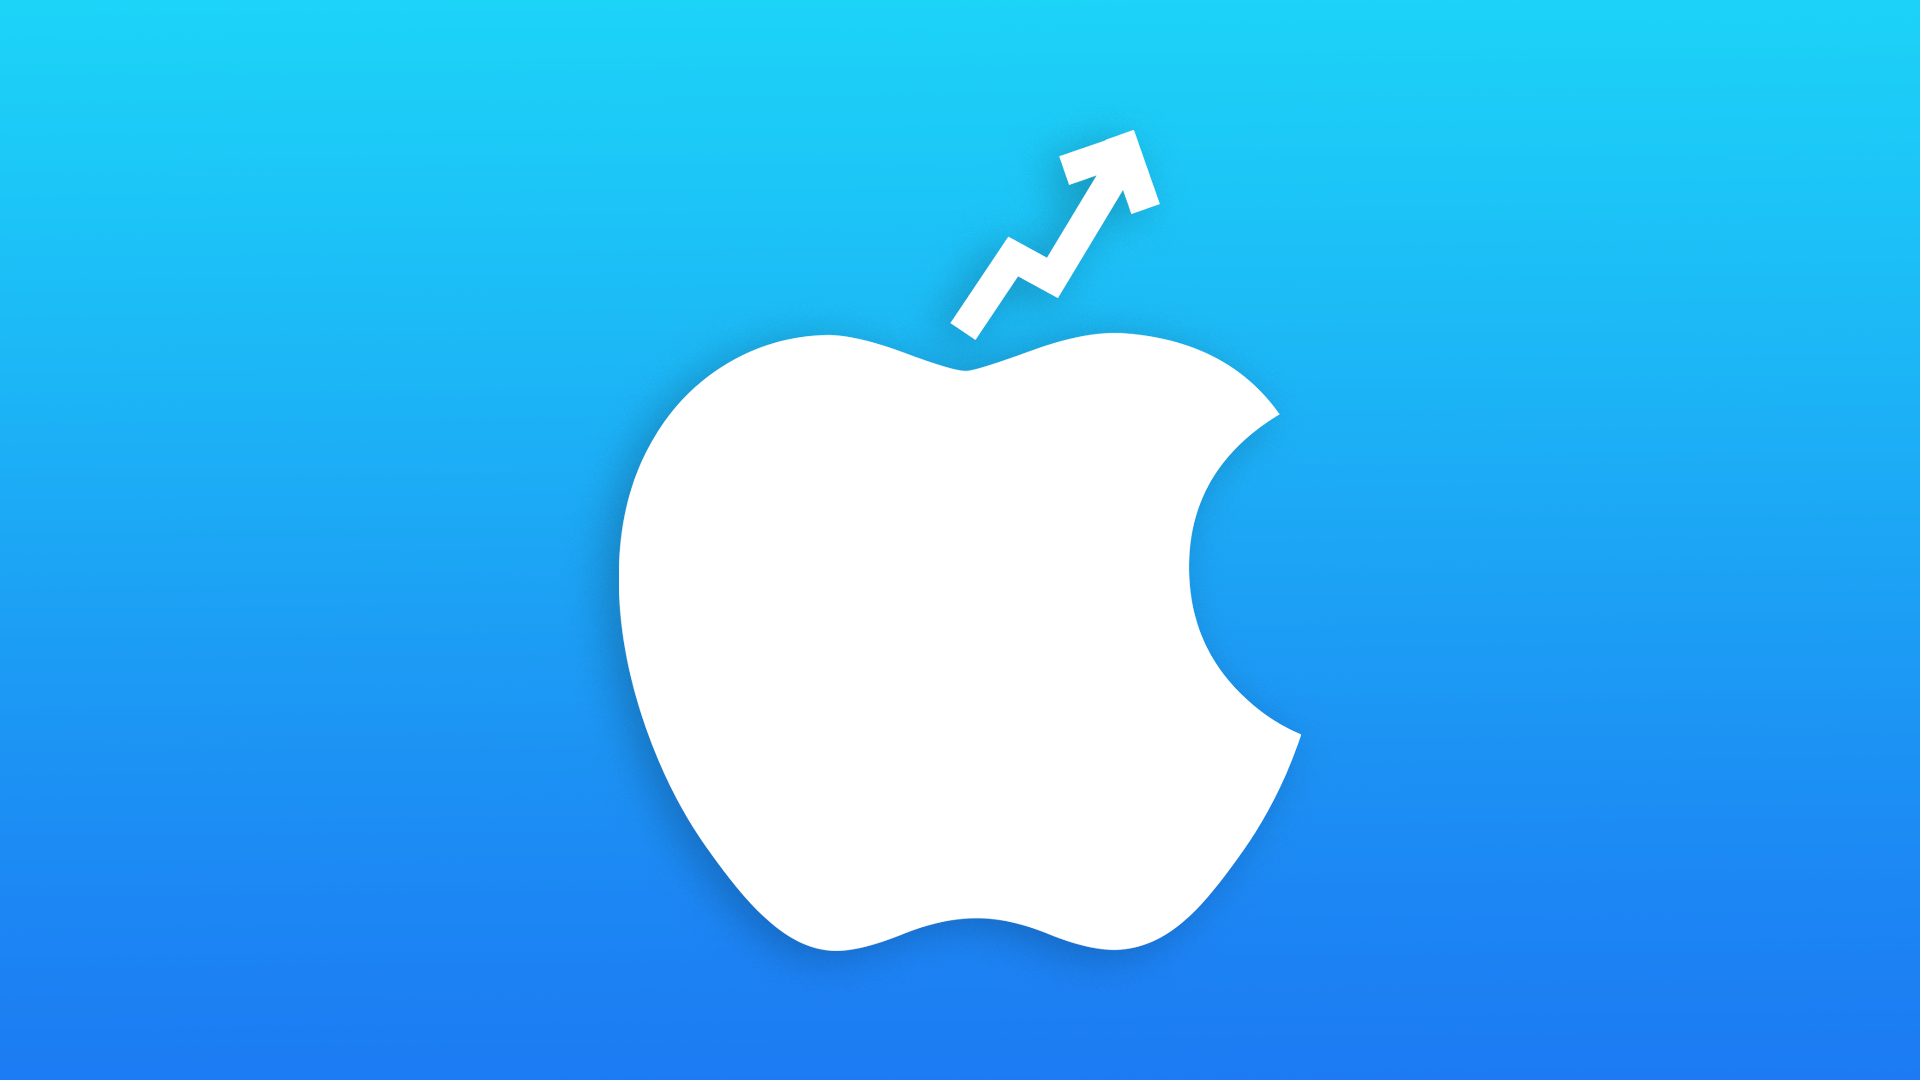 An Apple logo with a stock arrow going up